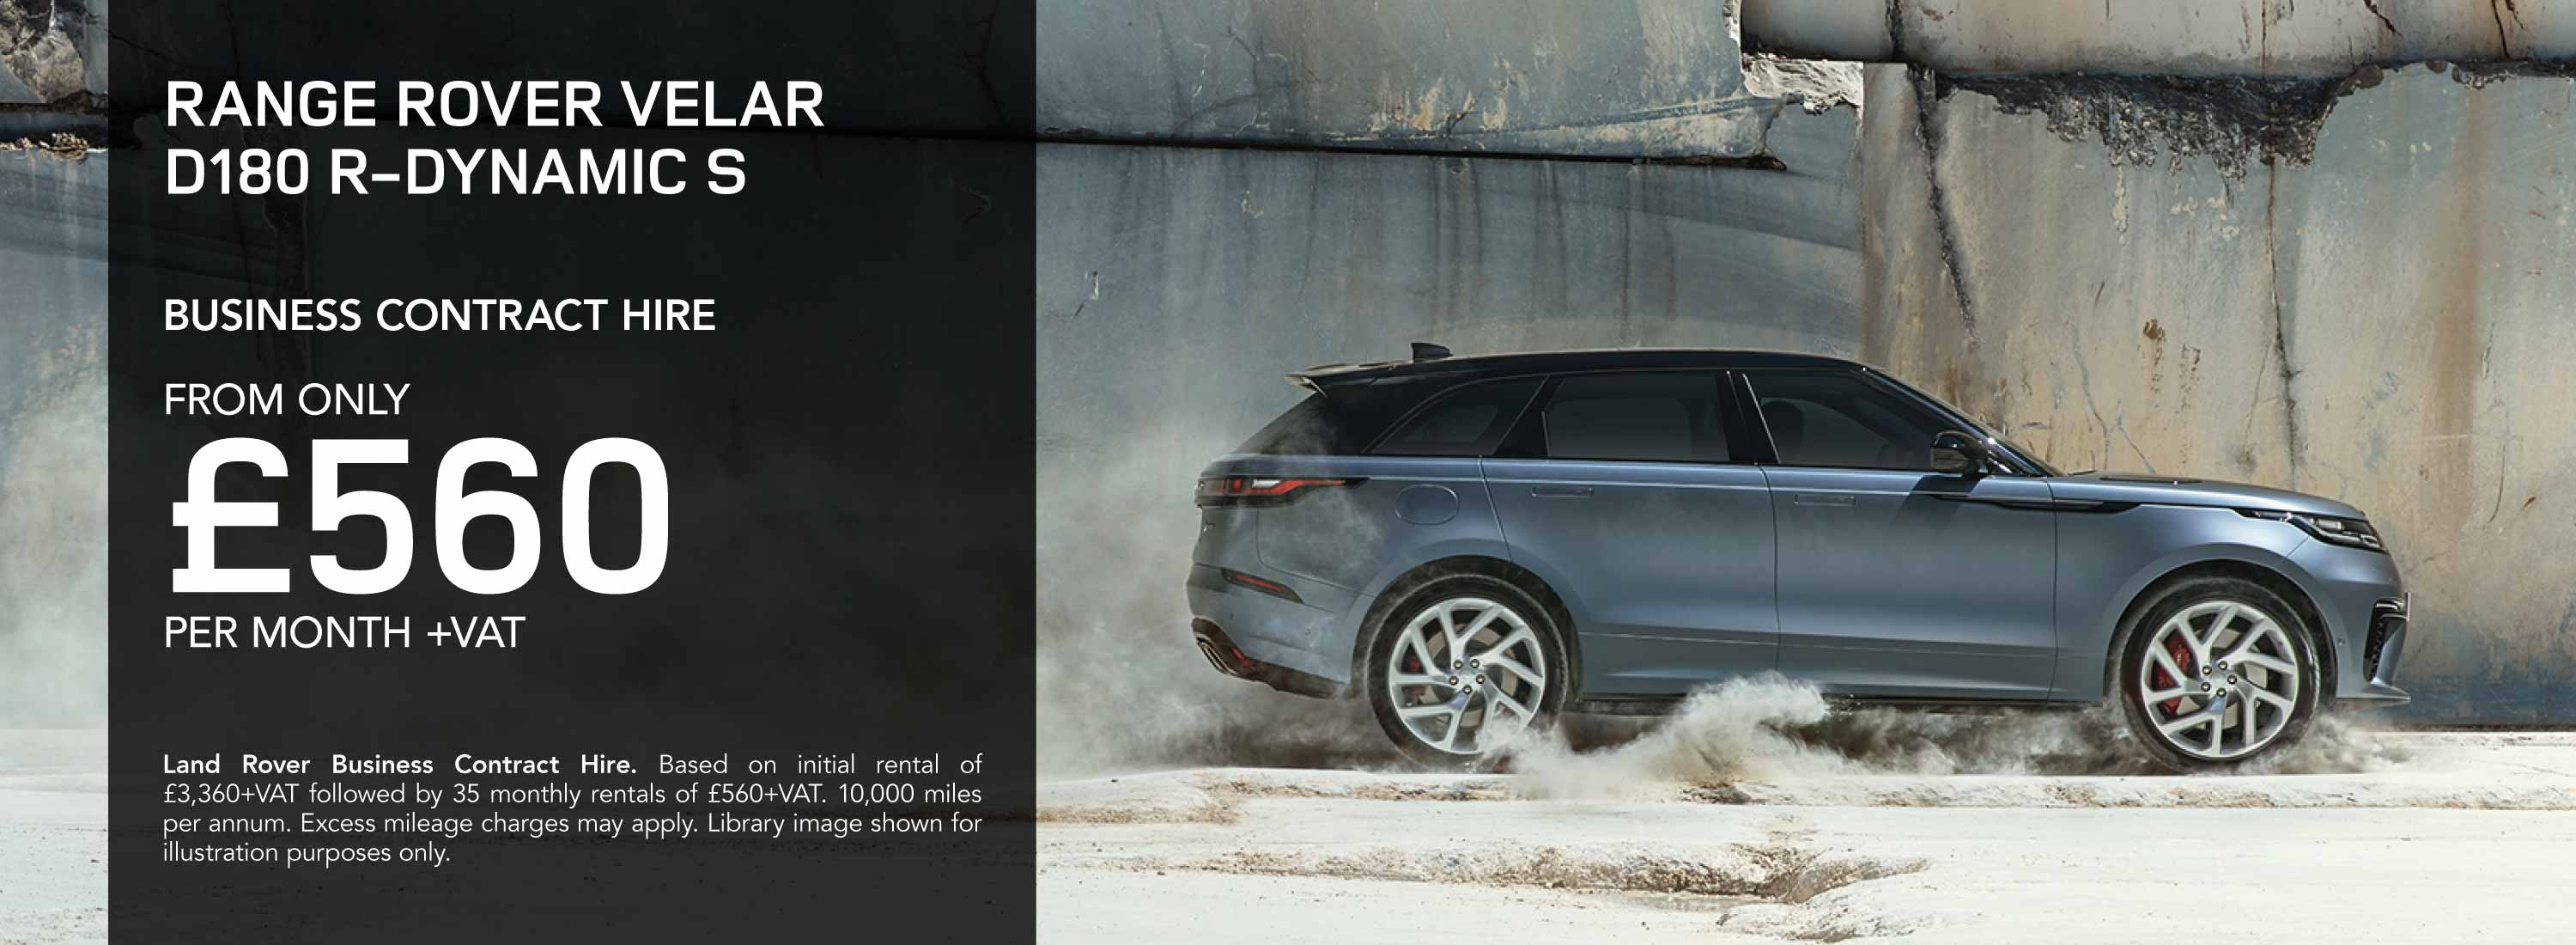 Land Rover Velar Business Contract Hire Offer